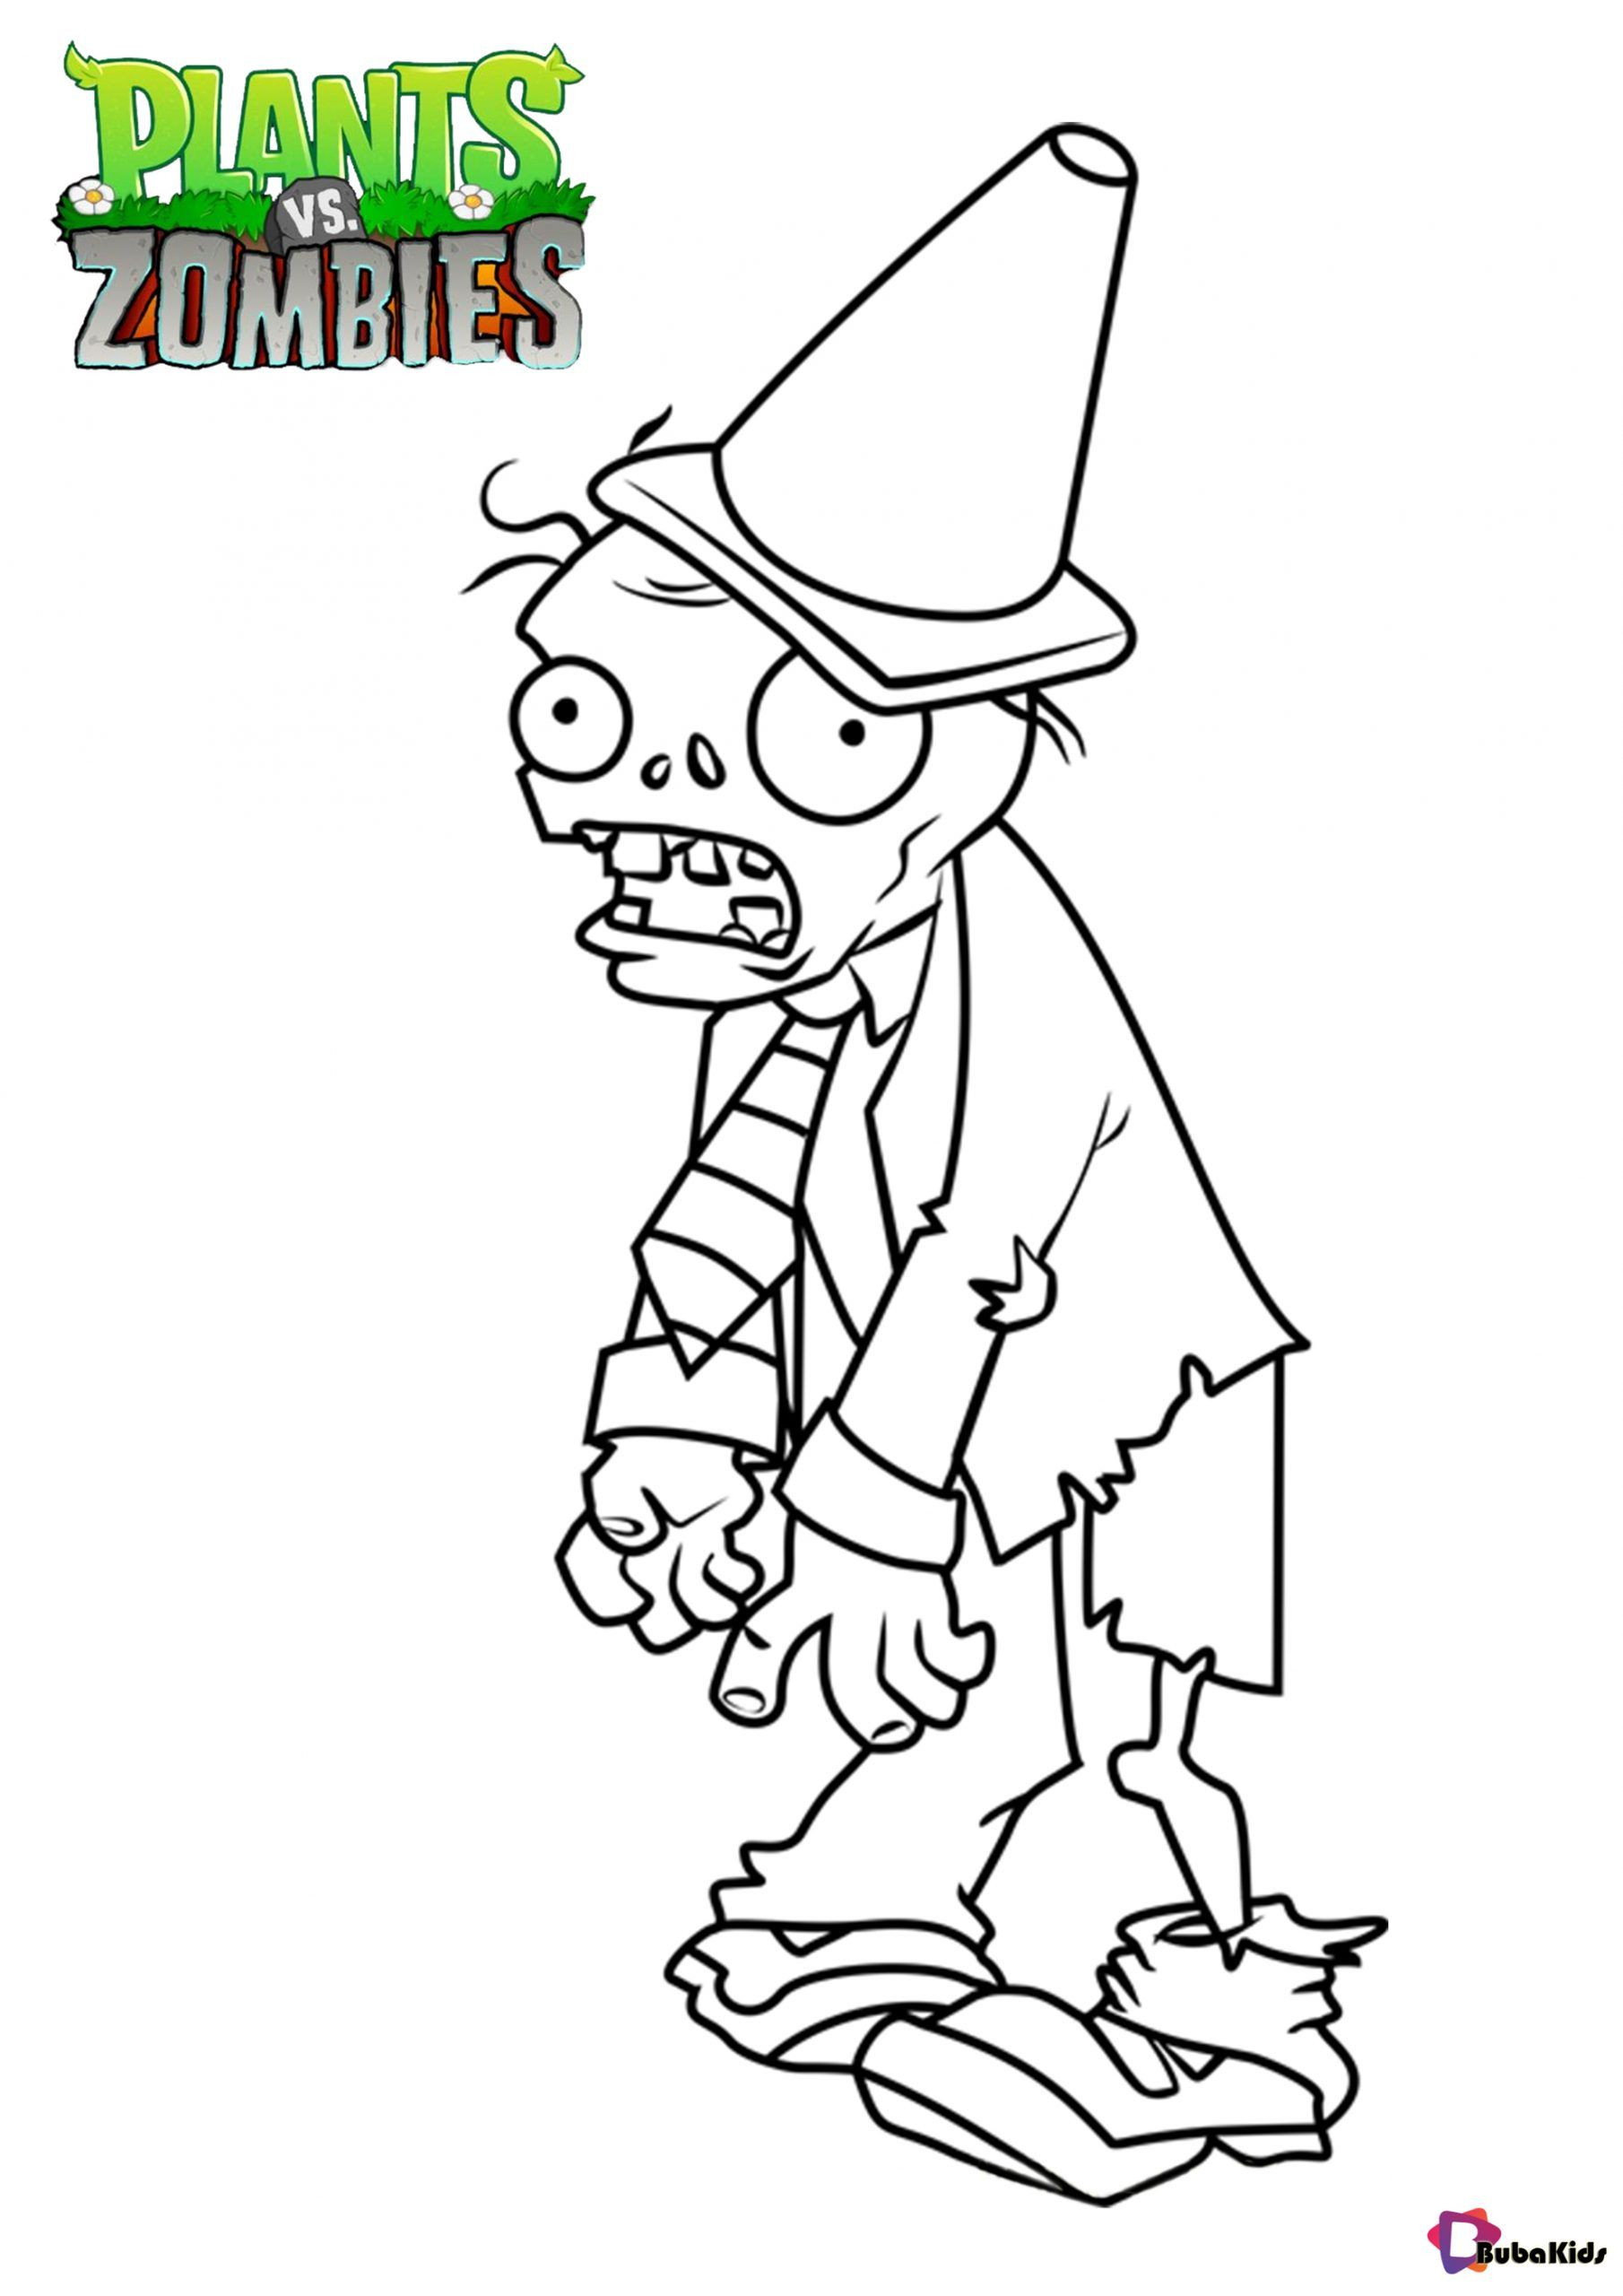 Plants Vs Zombies Conehead Zombie Coloring Page Collection Of Cartoon Coloring Pages For Teenage Print Cartoon Coloring Pages Coloring Pages Plants Vs Zombies